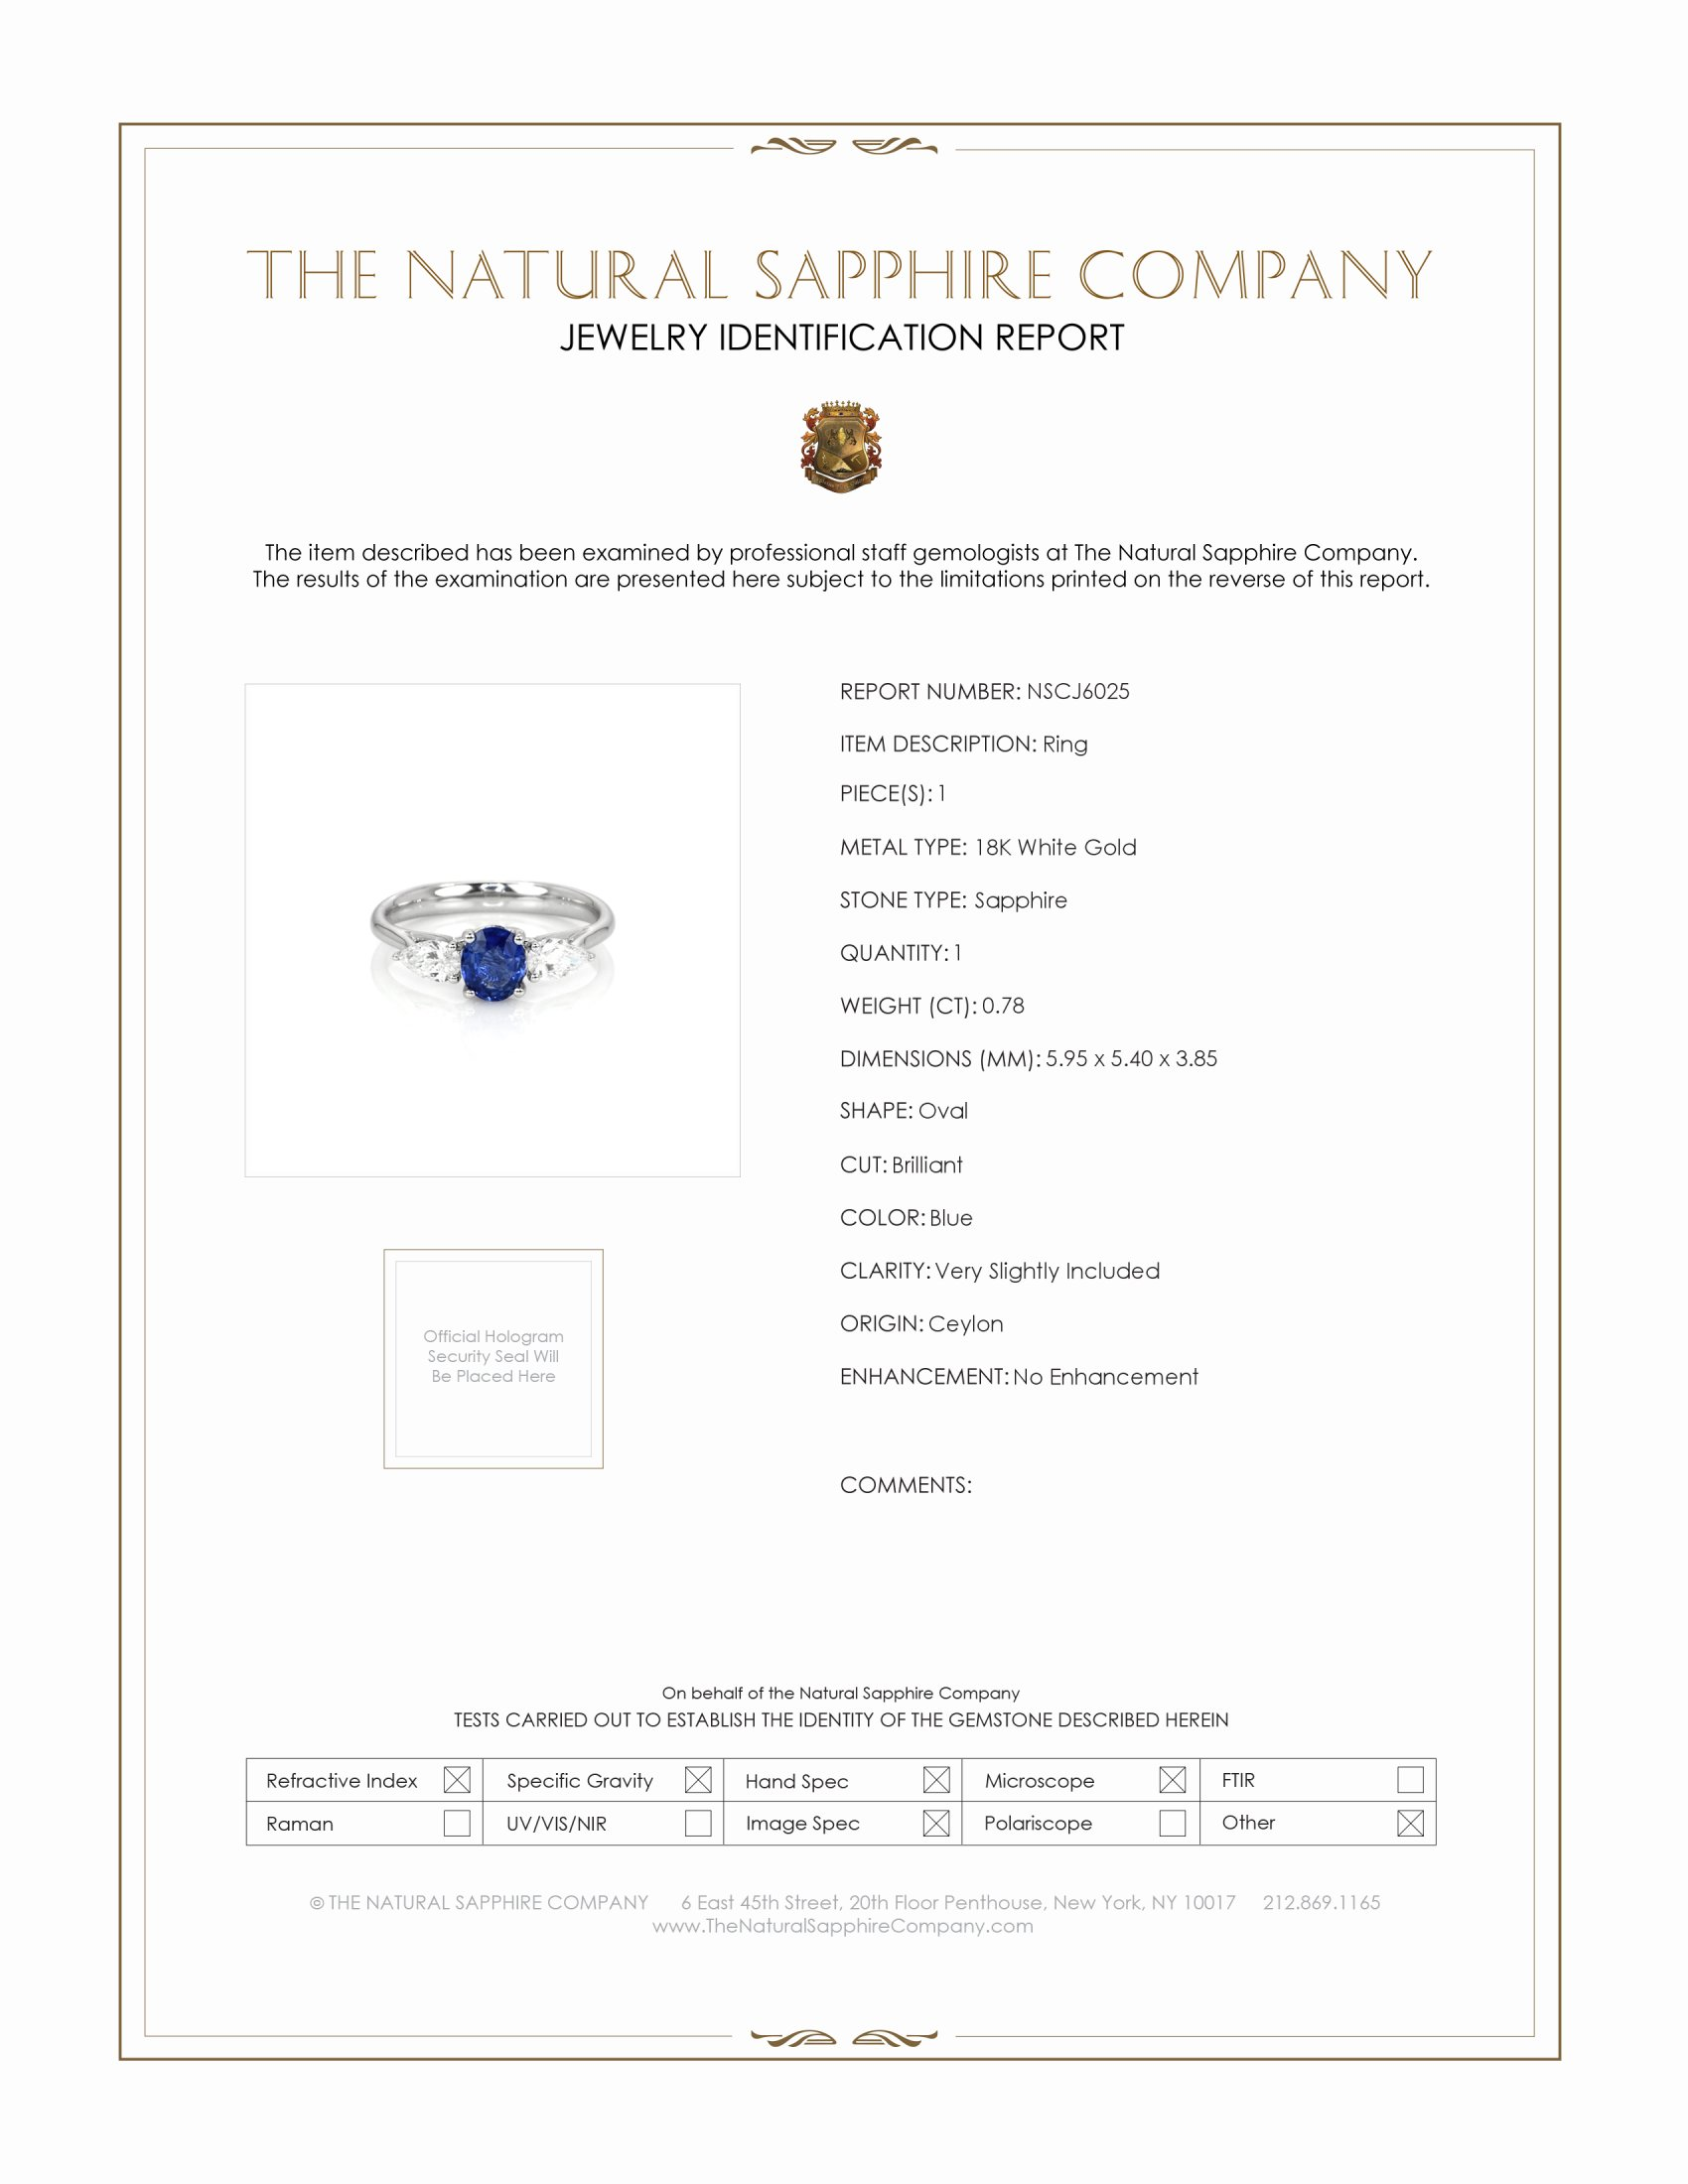 0.78ct Blue Sapphire Ring Certification